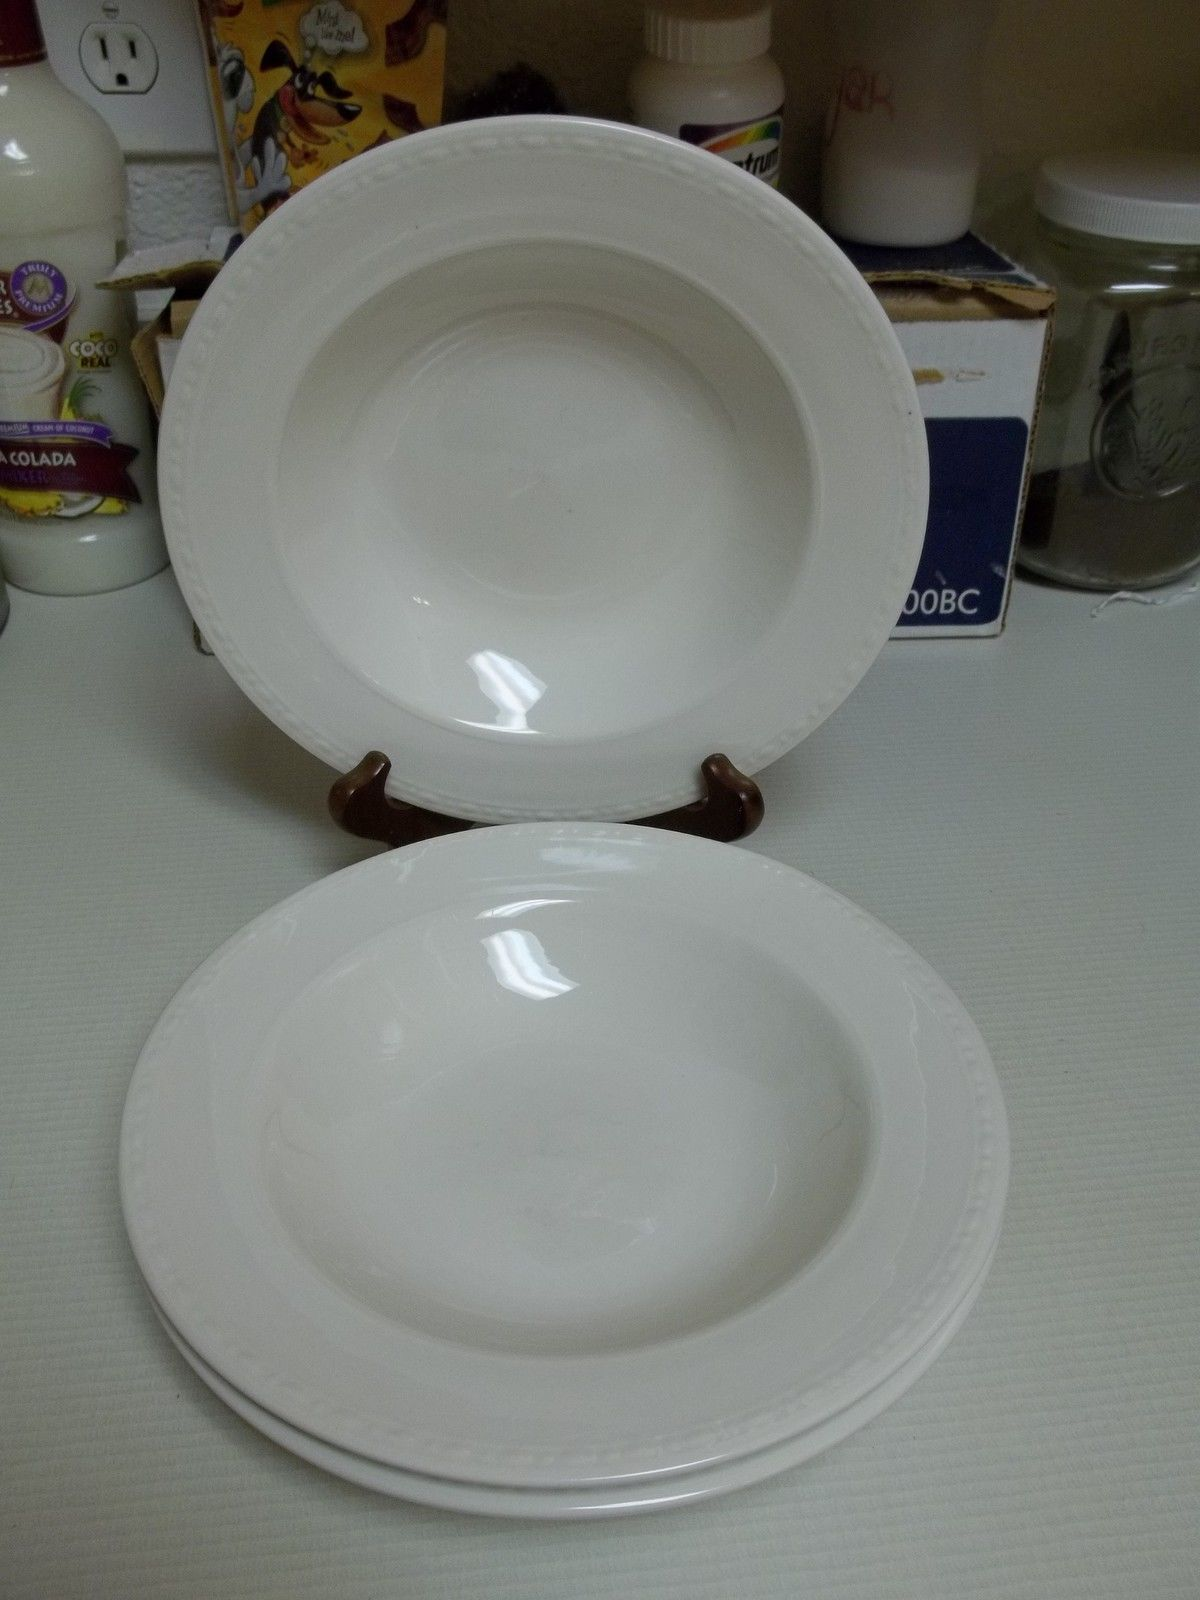 Oneida Casual Settings Meridian Set of 3 Rimmed Soup Bowls - $28.70